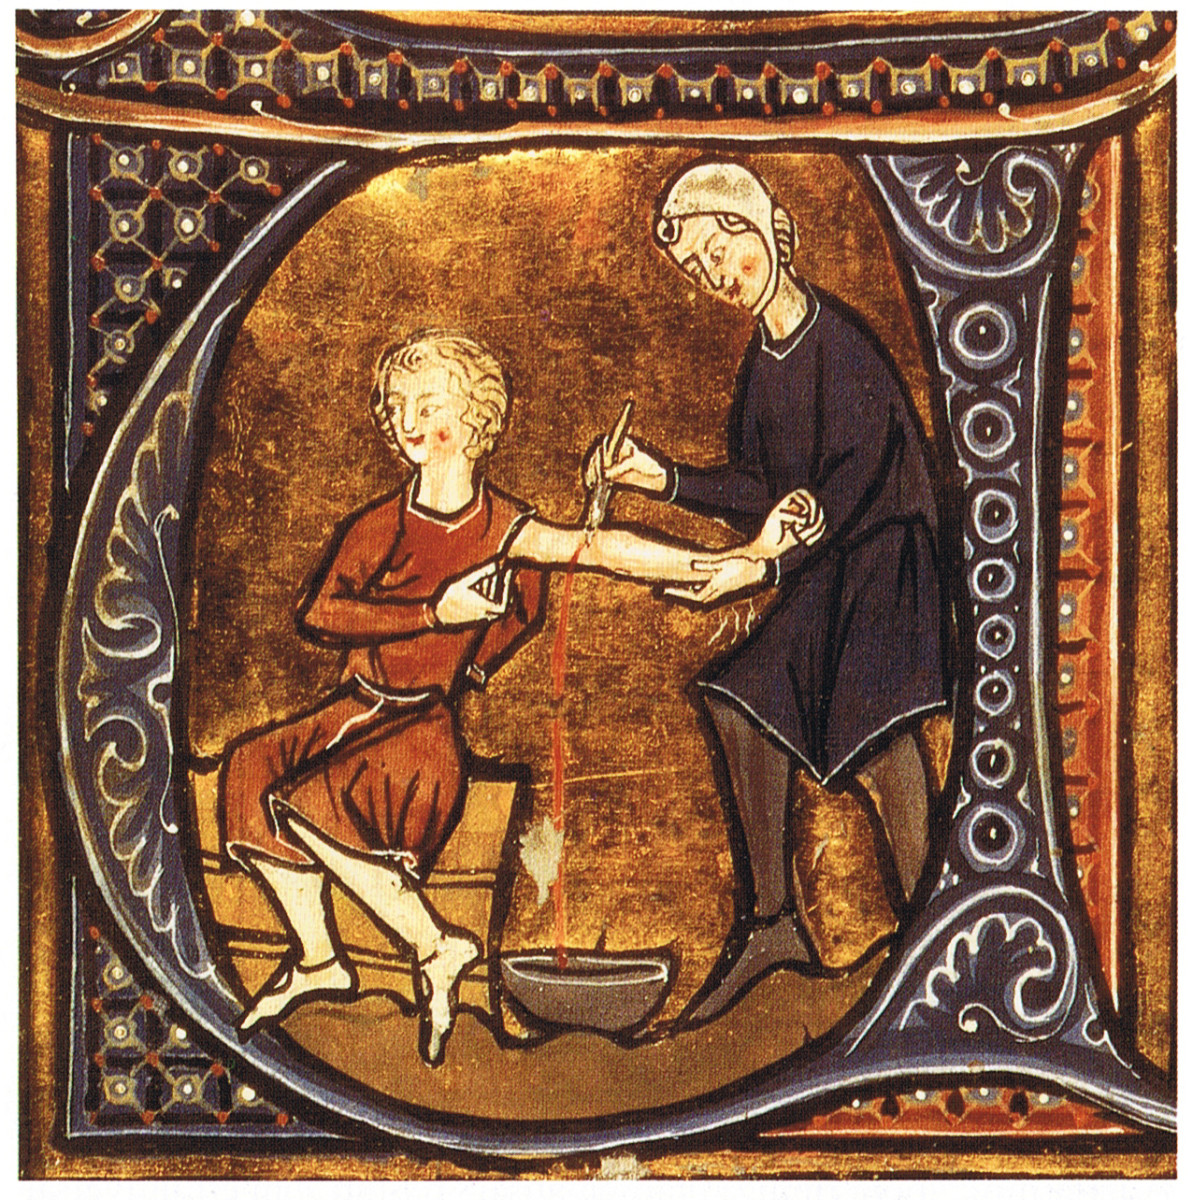 A bloodletting procedure.